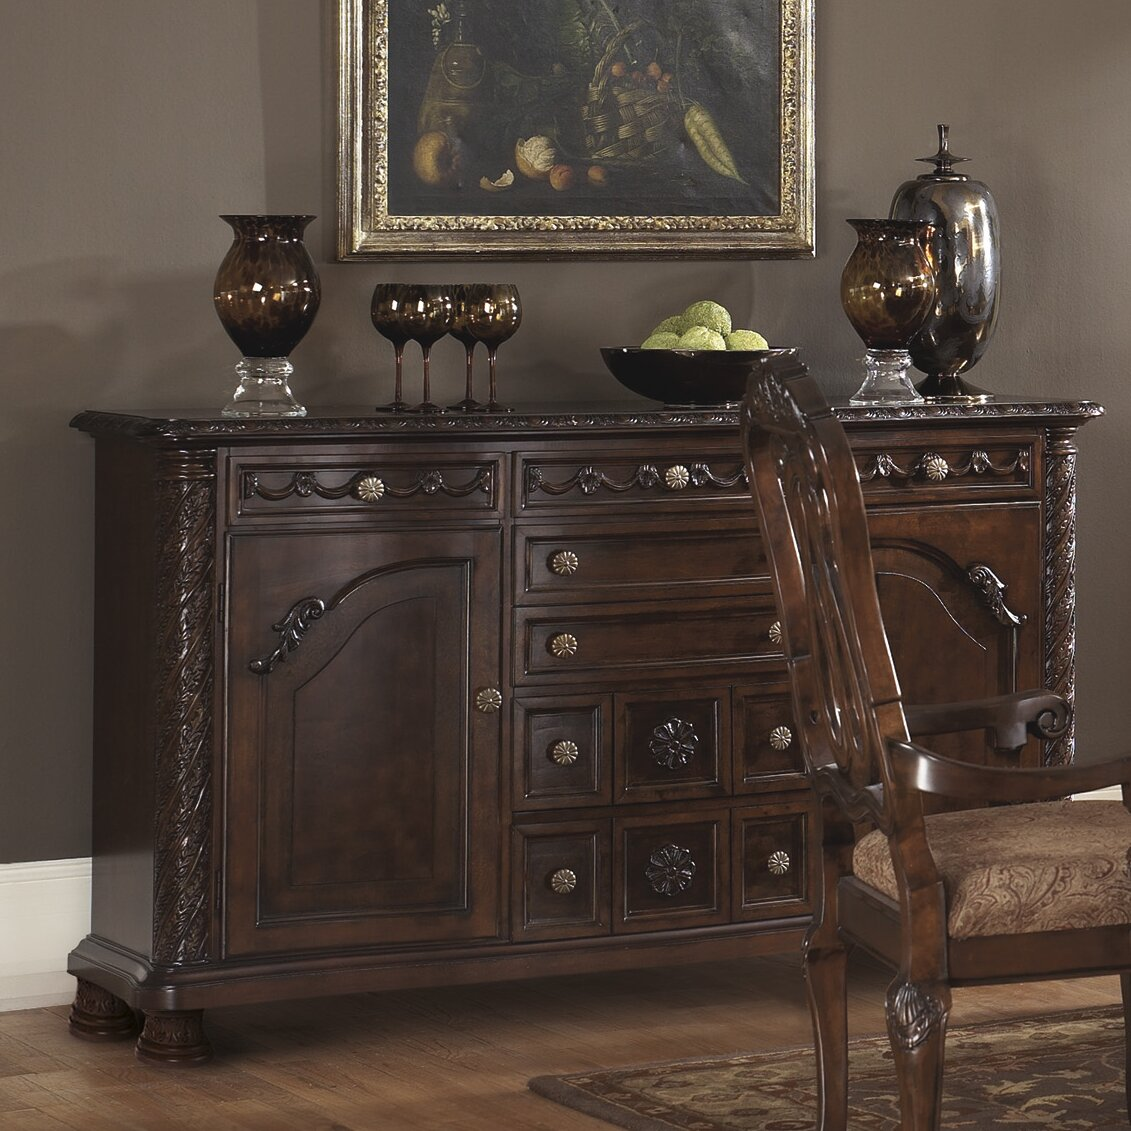 Dining Room Side Board: Wildon Home ® North Shore Dining Room Sideboard & Reviews